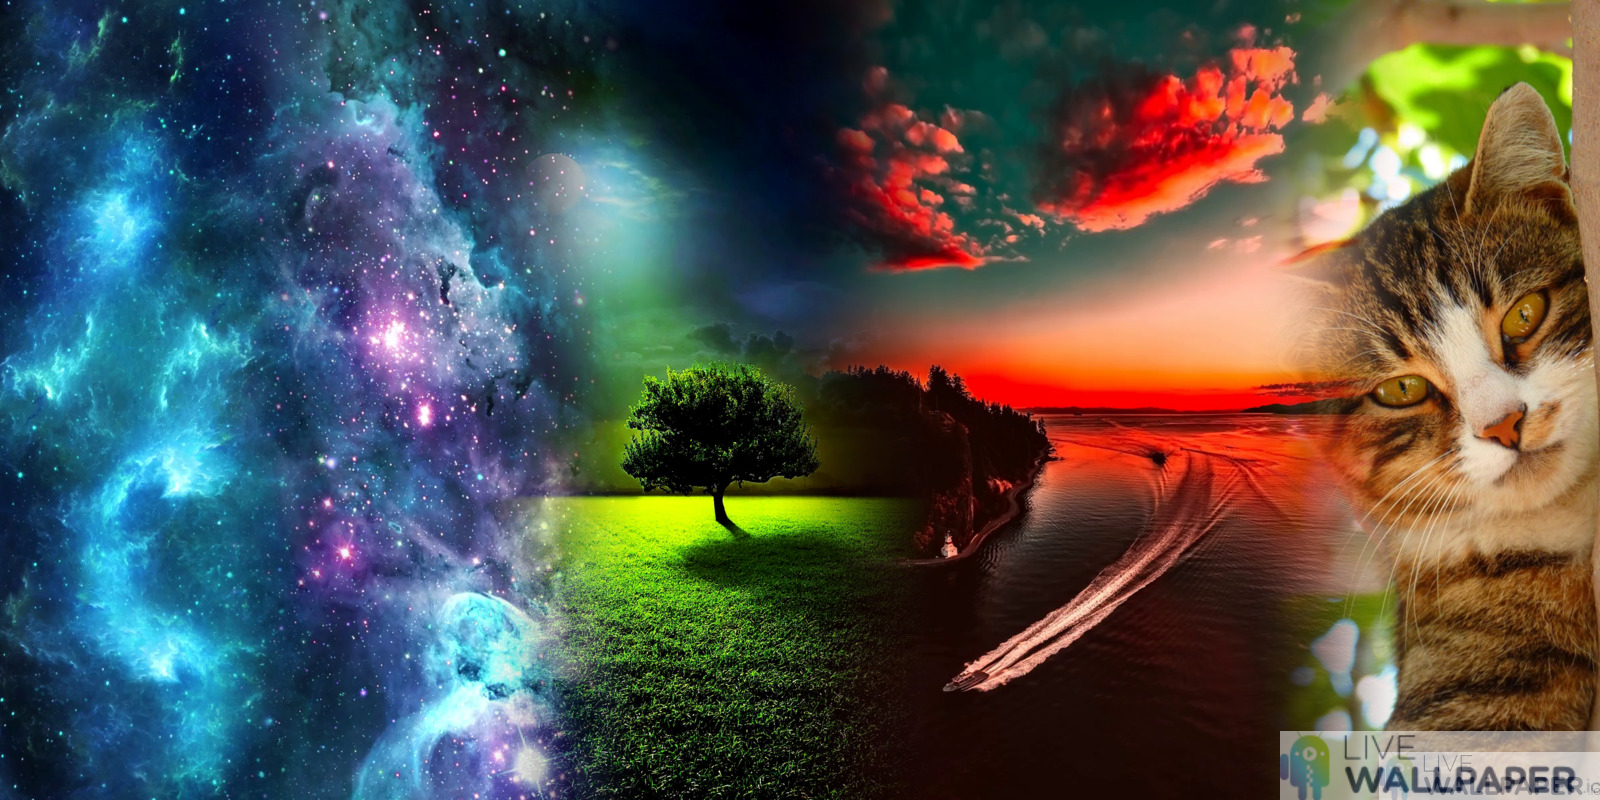 22 cool live wallpapers tagged with calm, sorted by date ...